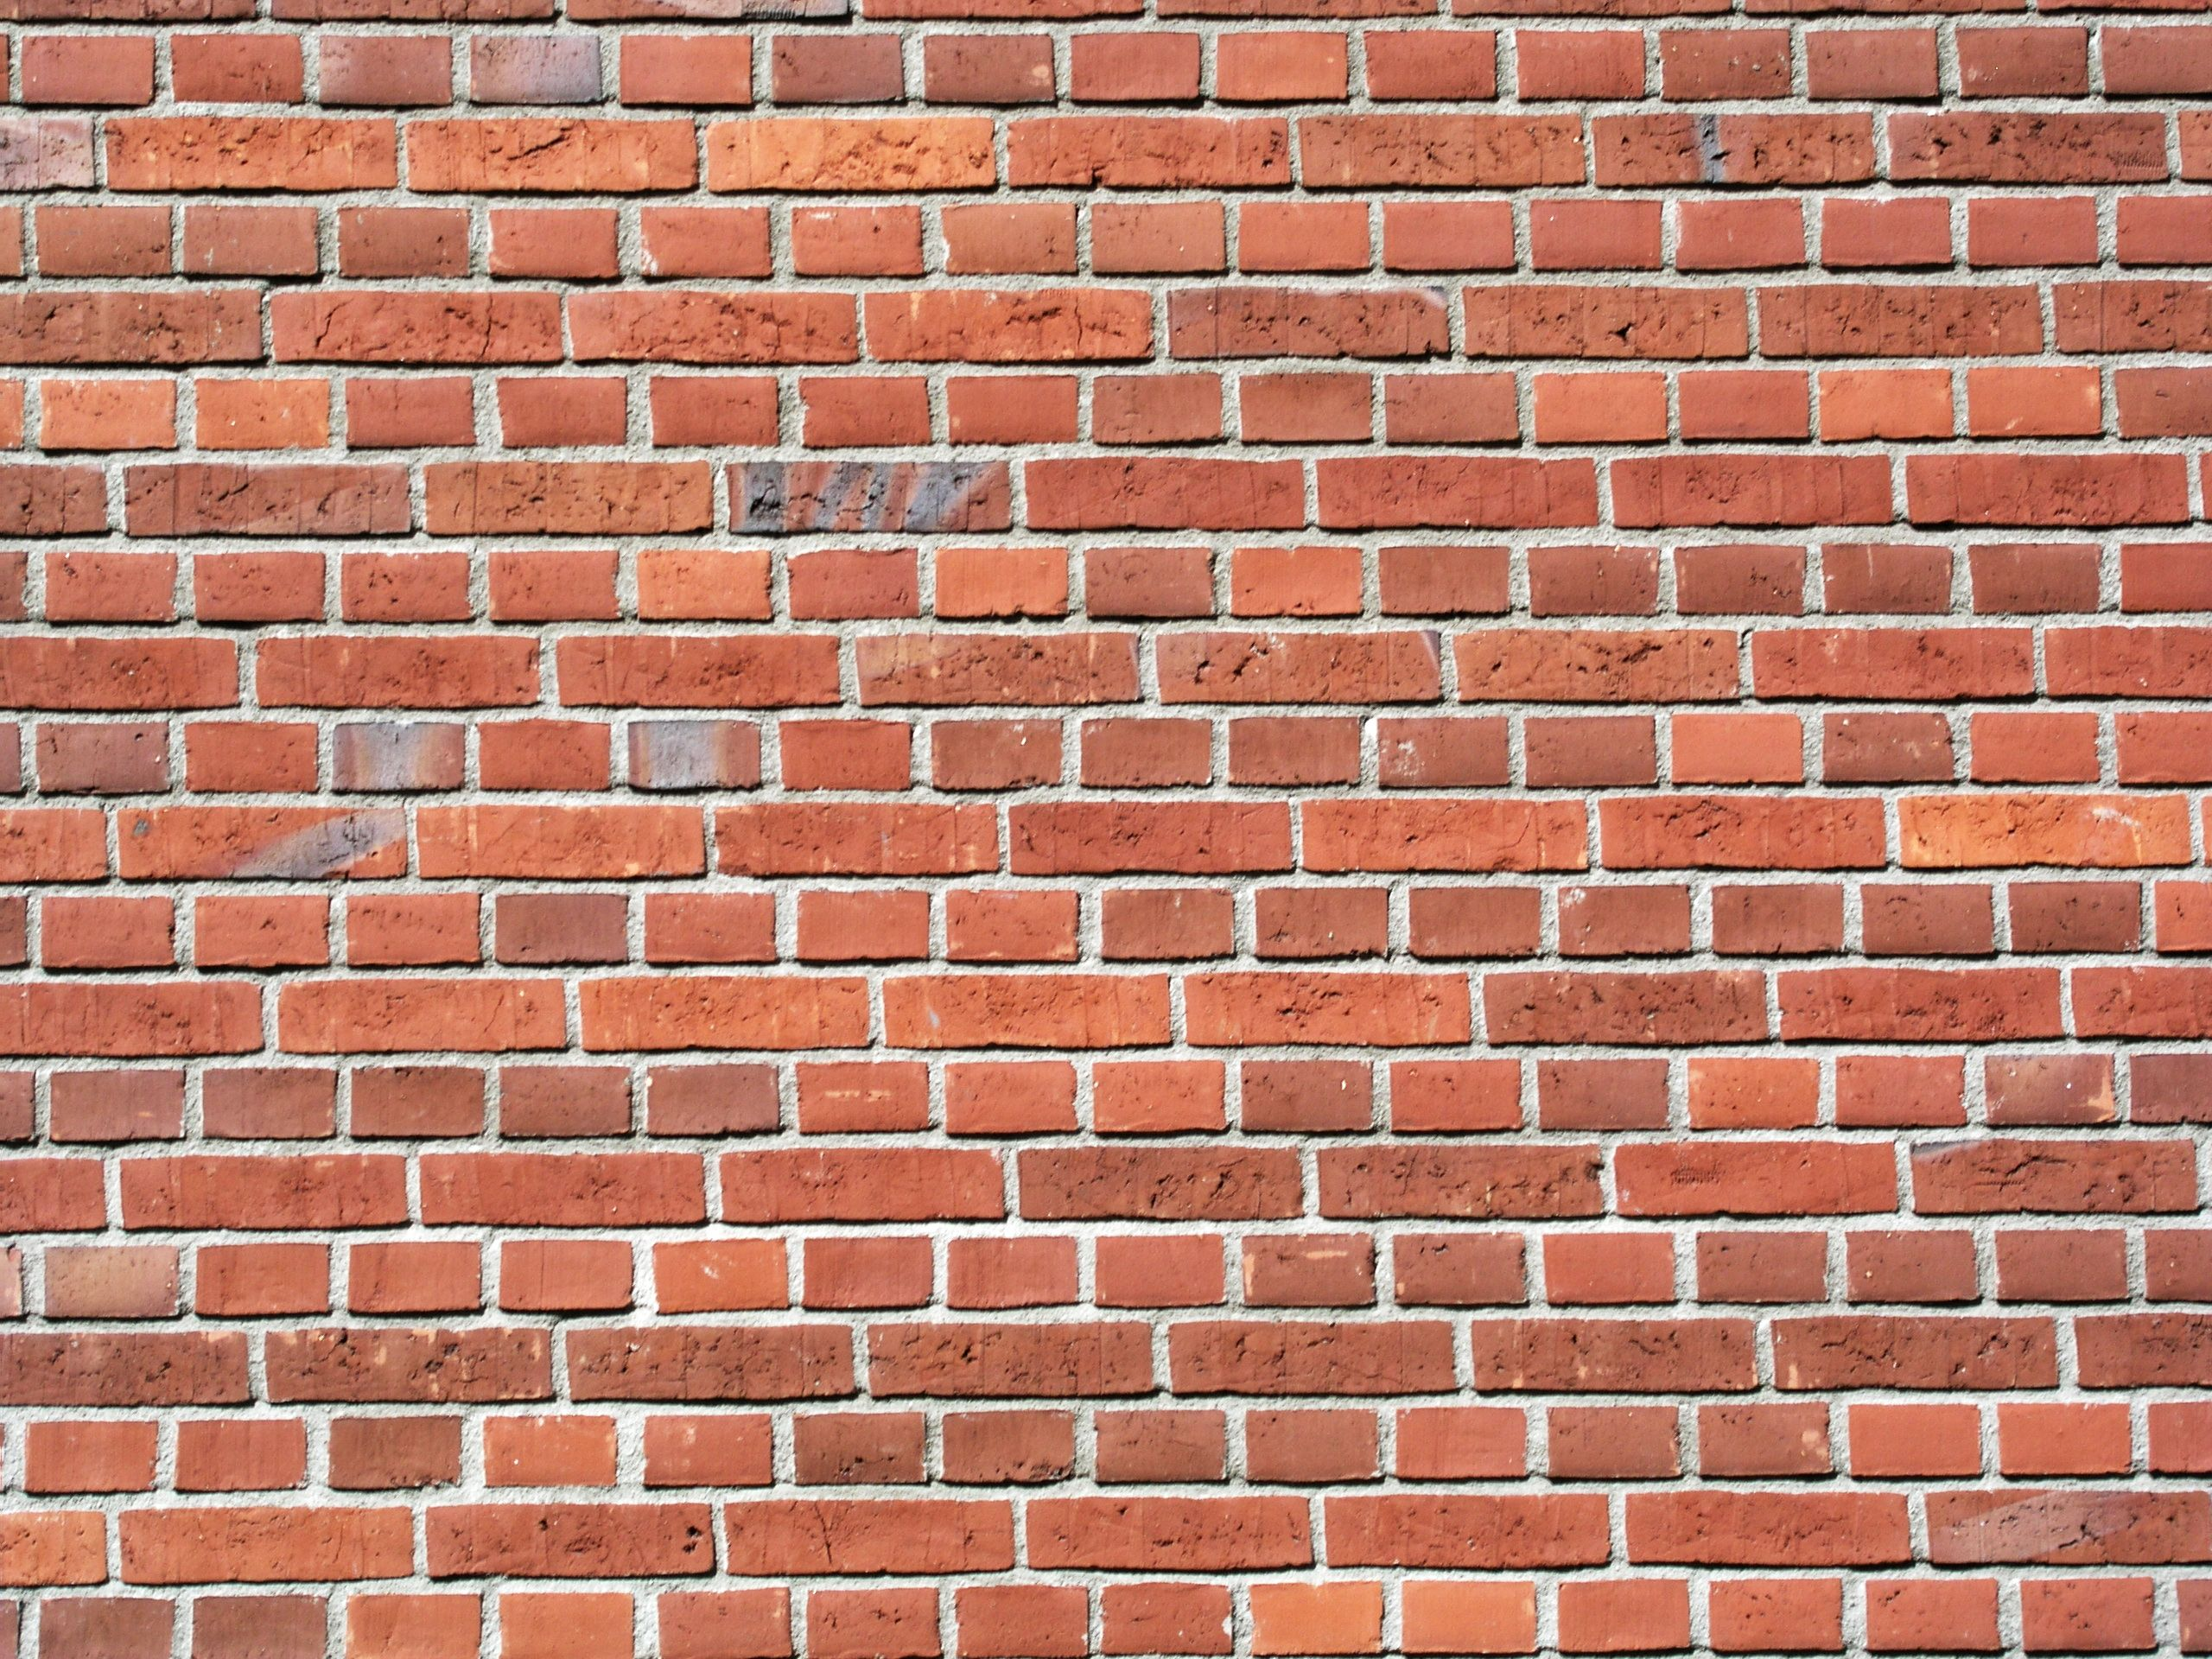 Download Free 15 Brick Wallpaper Brick pattern wallpaper